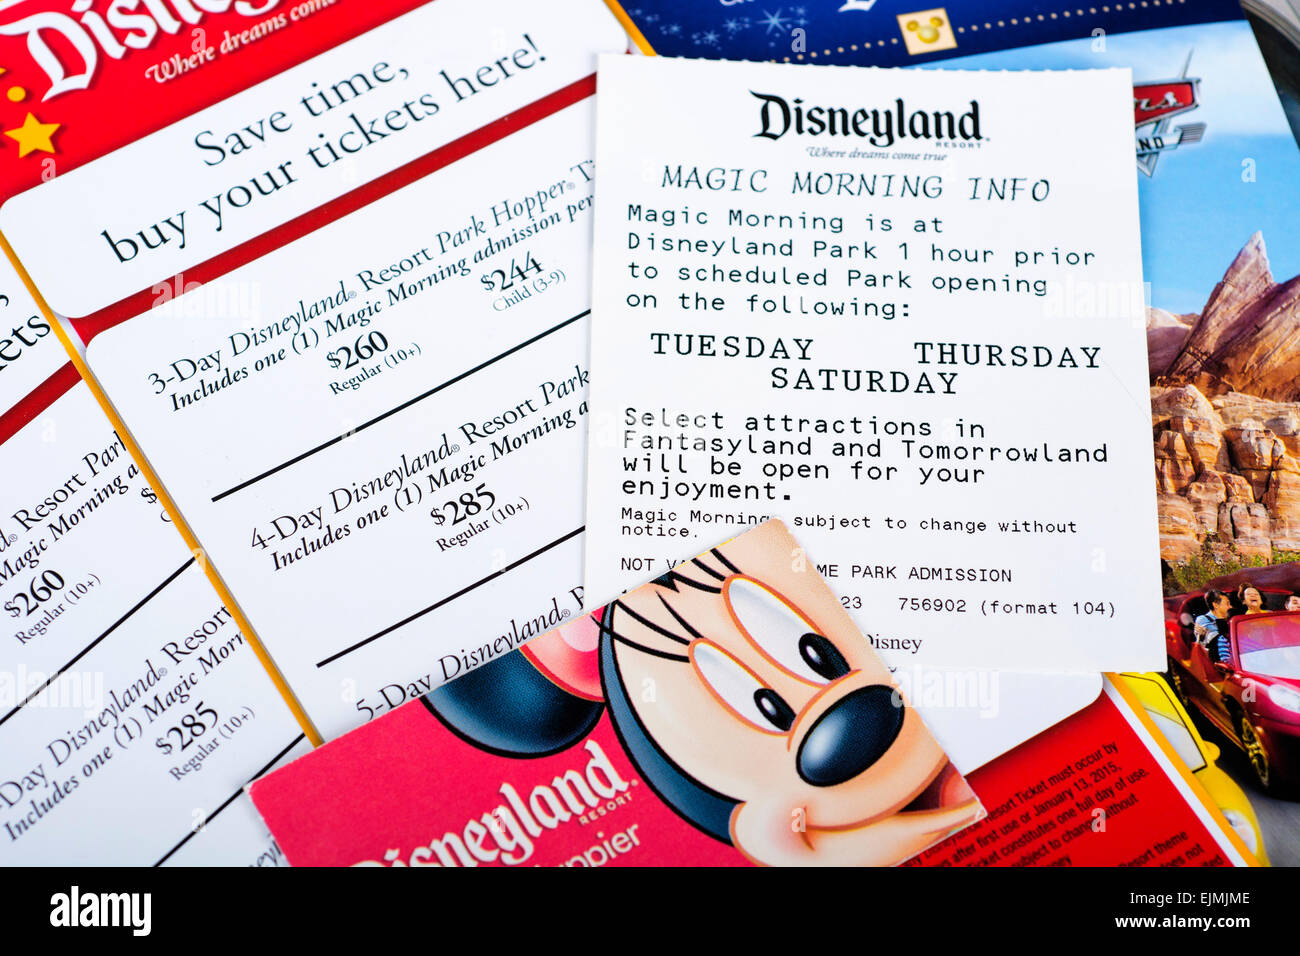 Tickets Disney, Magic Morning, 3-Day Hopper, Prices - Stock Image